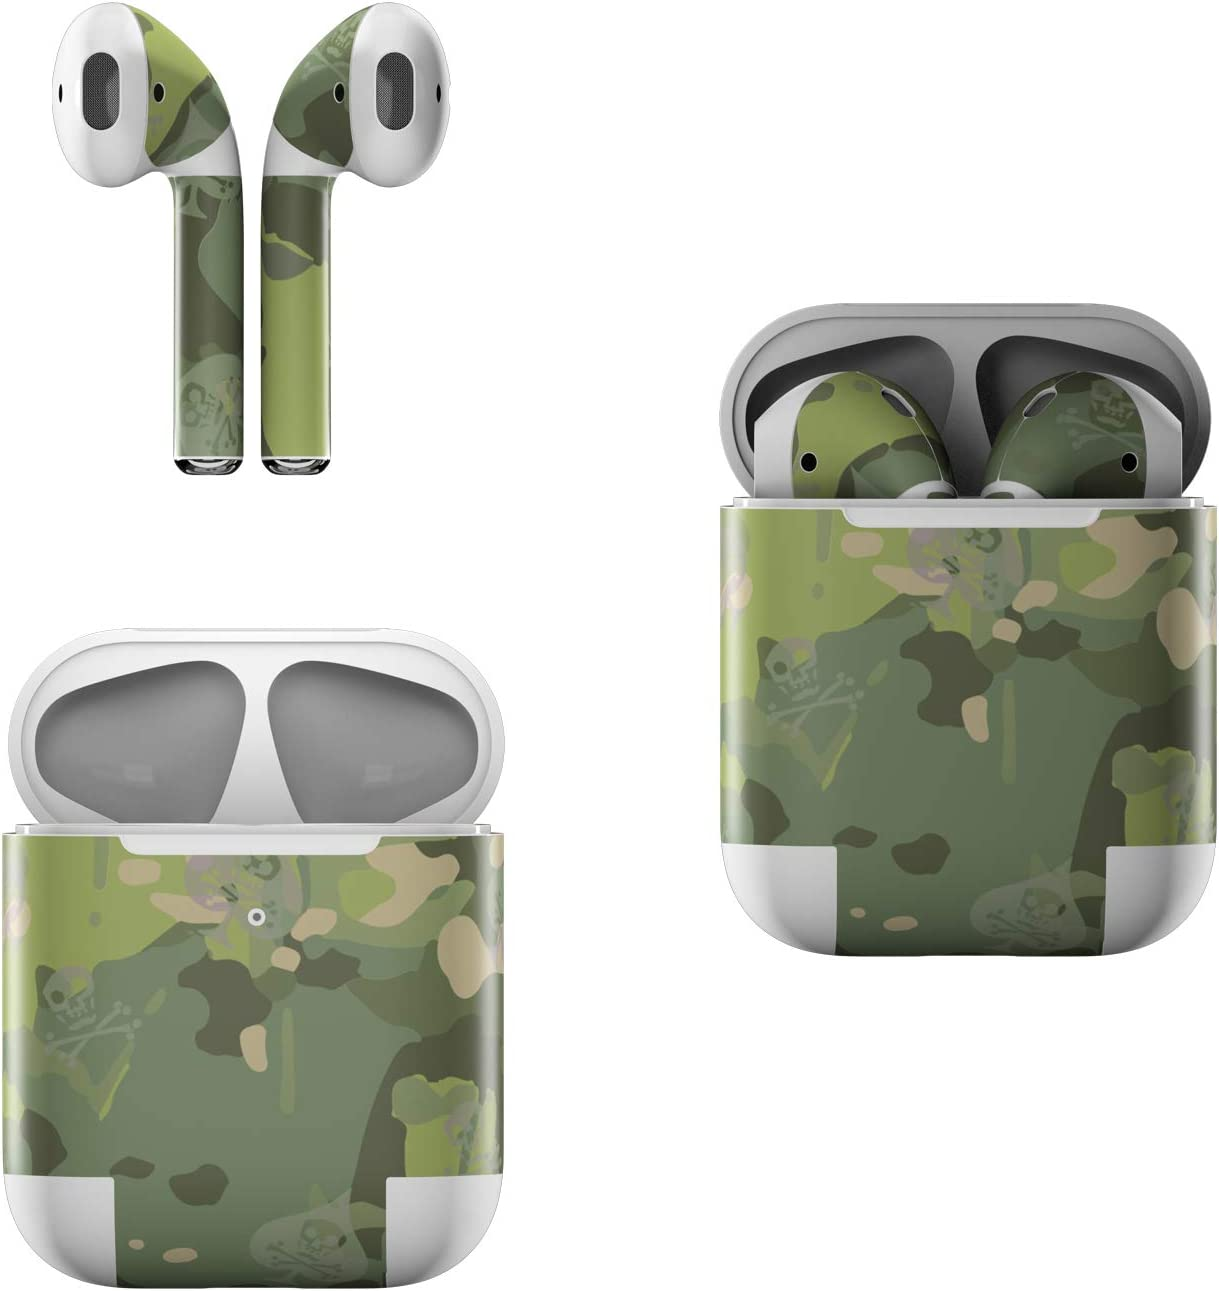 Skin Decals for Apple AirPods - SOFLETE Tropical Multicam - Sticker Wrap Fits 1st and 2nd Generation